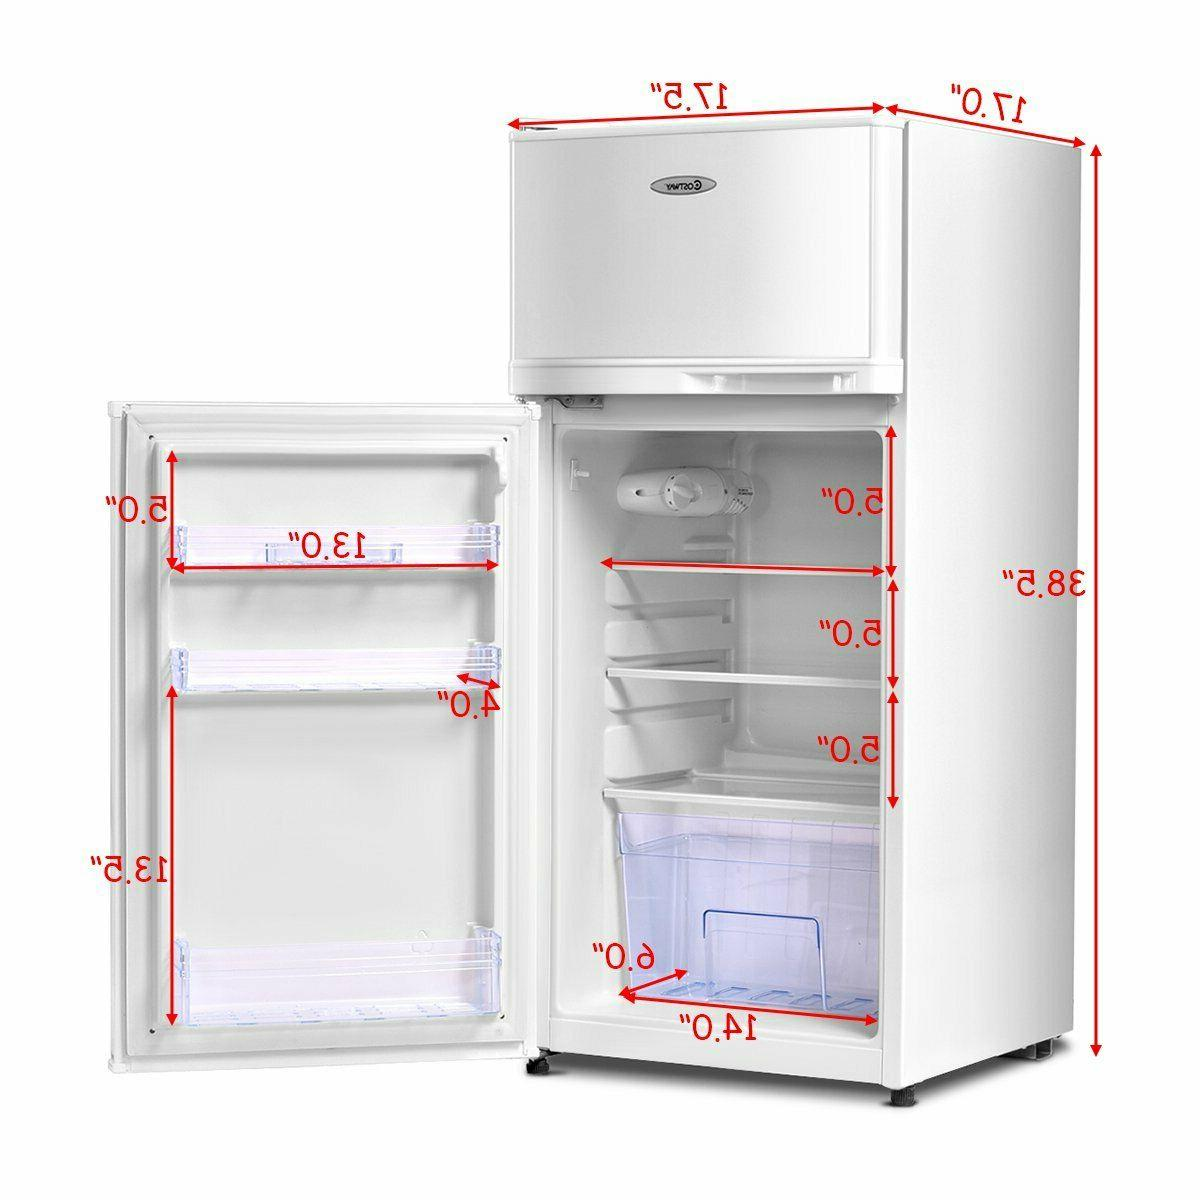 compact refrigerator mini fridge freezer removeable shelves white